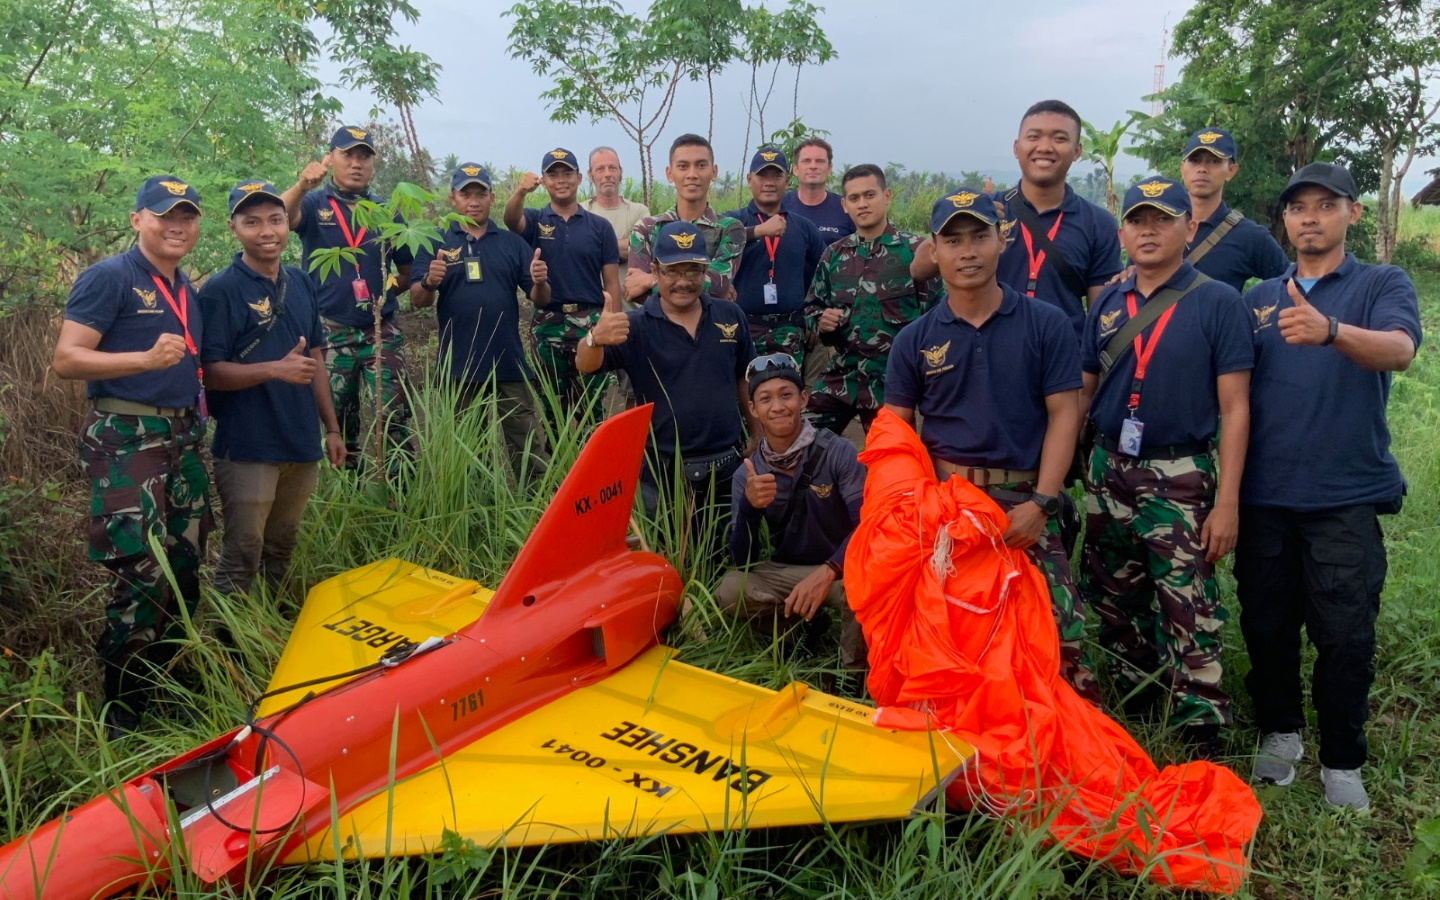 Indonesia Banshee Whirlwind acceptance testing